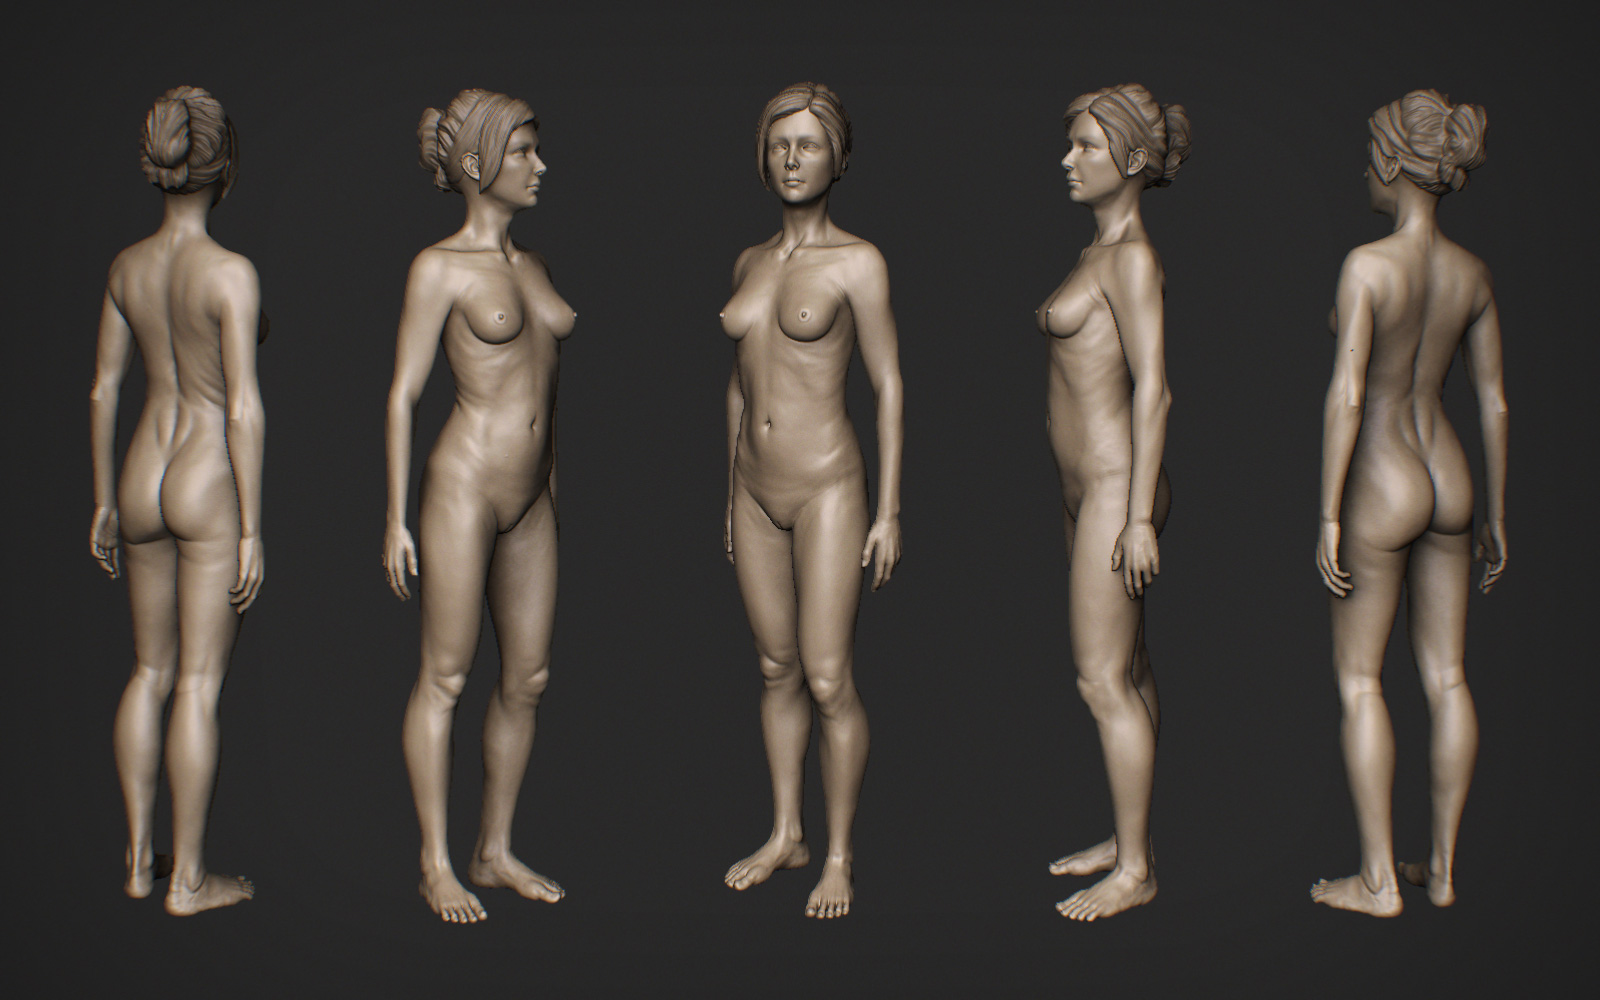 3d female model nude skins nsfw pics